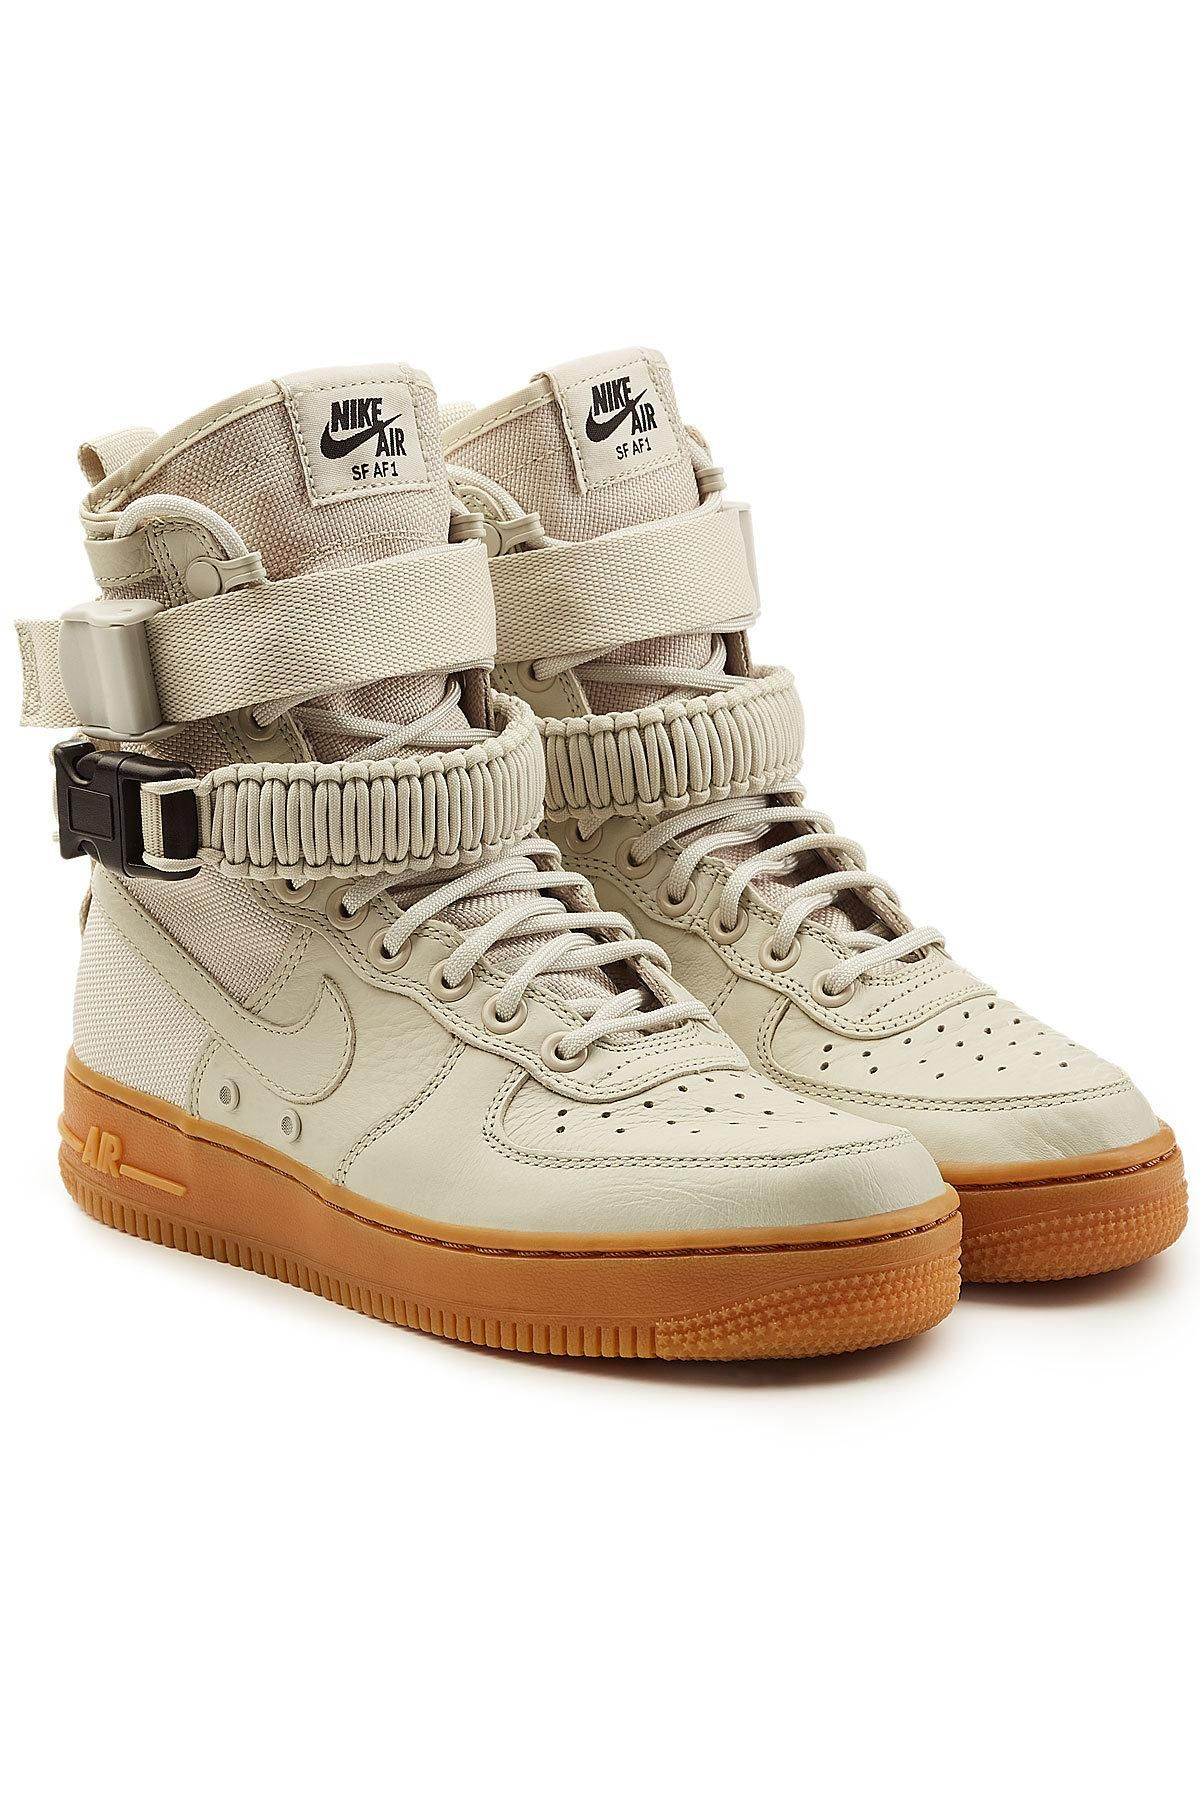 sale retailer 35a69 617f2 #xmas #Christmas #STYLEBOP.com (FR/NL/IT) - #Nike Nike SF Air Force 1 High  Top Sneakers with Leather - AdoreWe.com